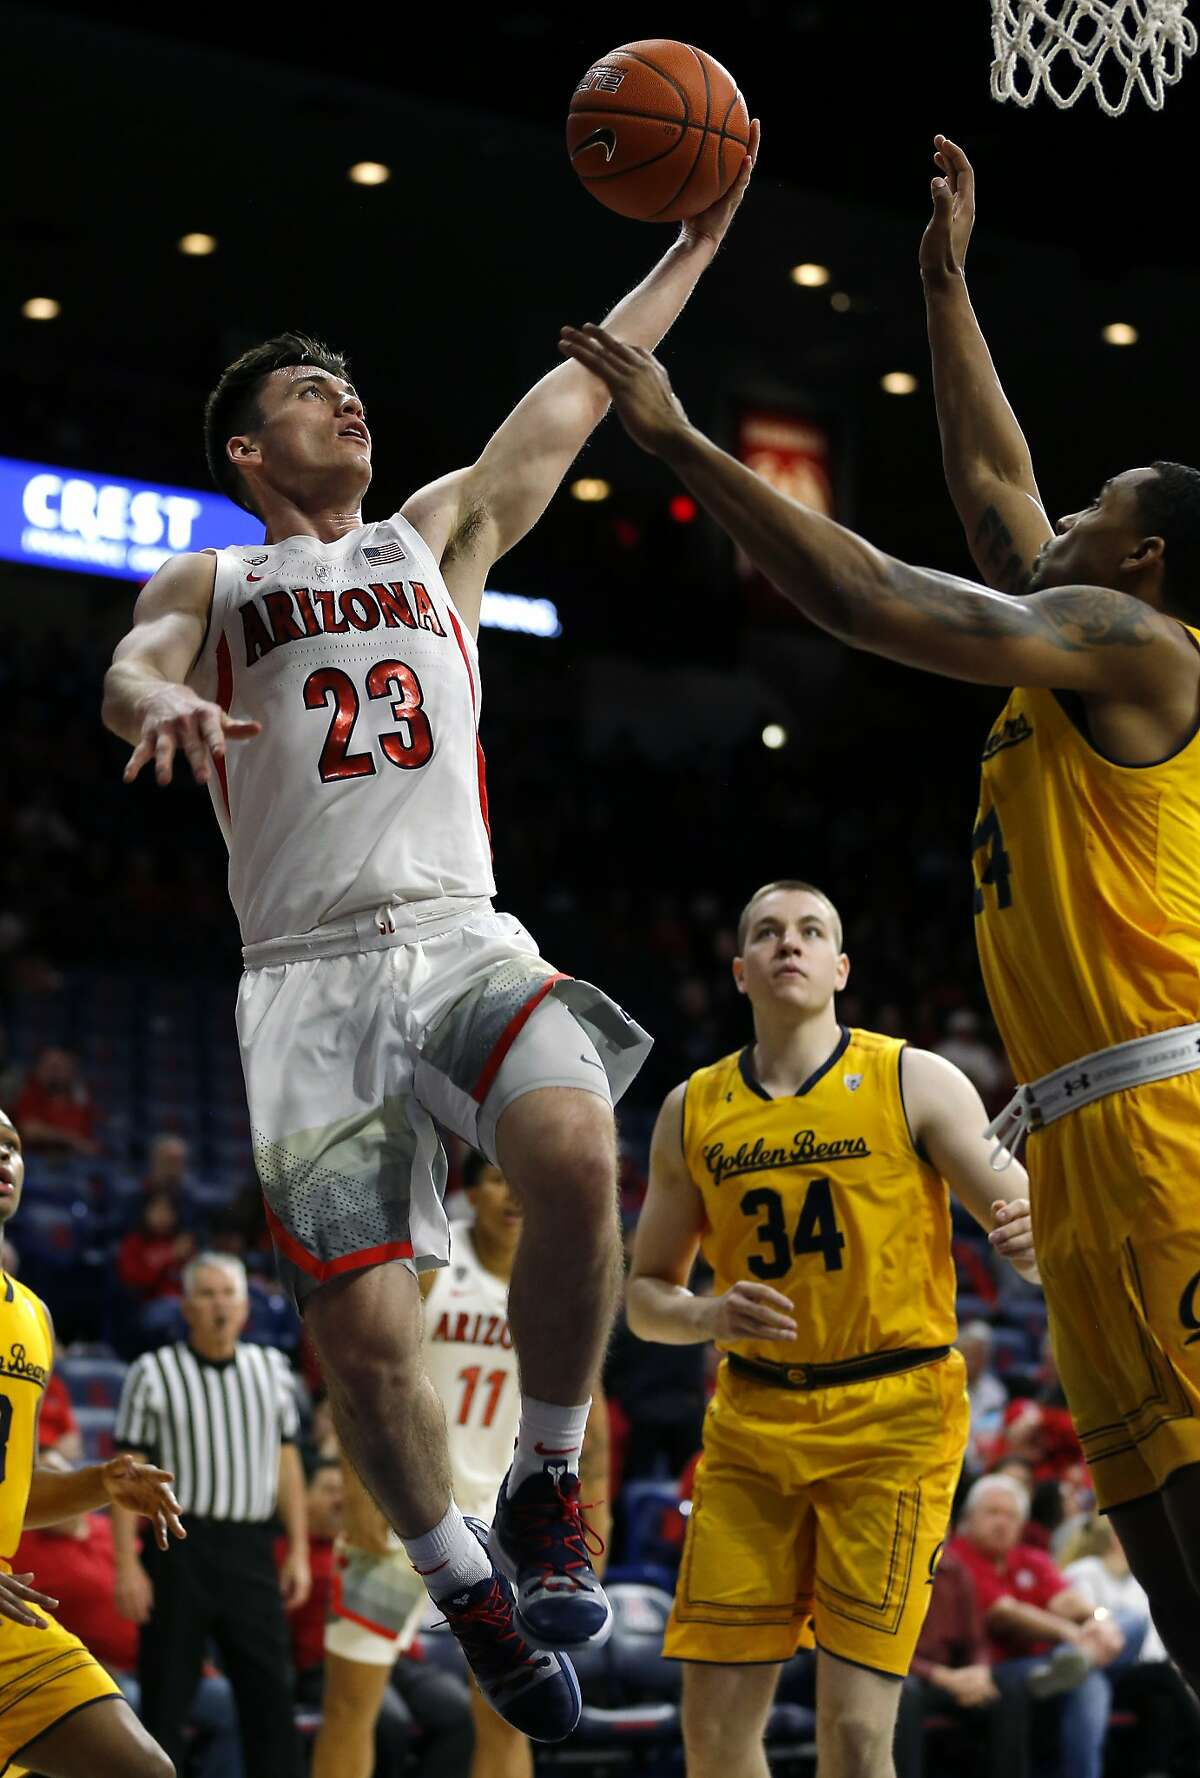 8. Arizona Wildcats (16-12, 7-8 Pac-12) Arizona finally broke out of their seven-game meltdown to sweep Cal and Stanford, giving the beleaguered Wildcats some much-needed momentum. Despite the program's woes involving the FBI, such a down year has to be a disappointing development for a team that had become such a fixture in the Pac-12.